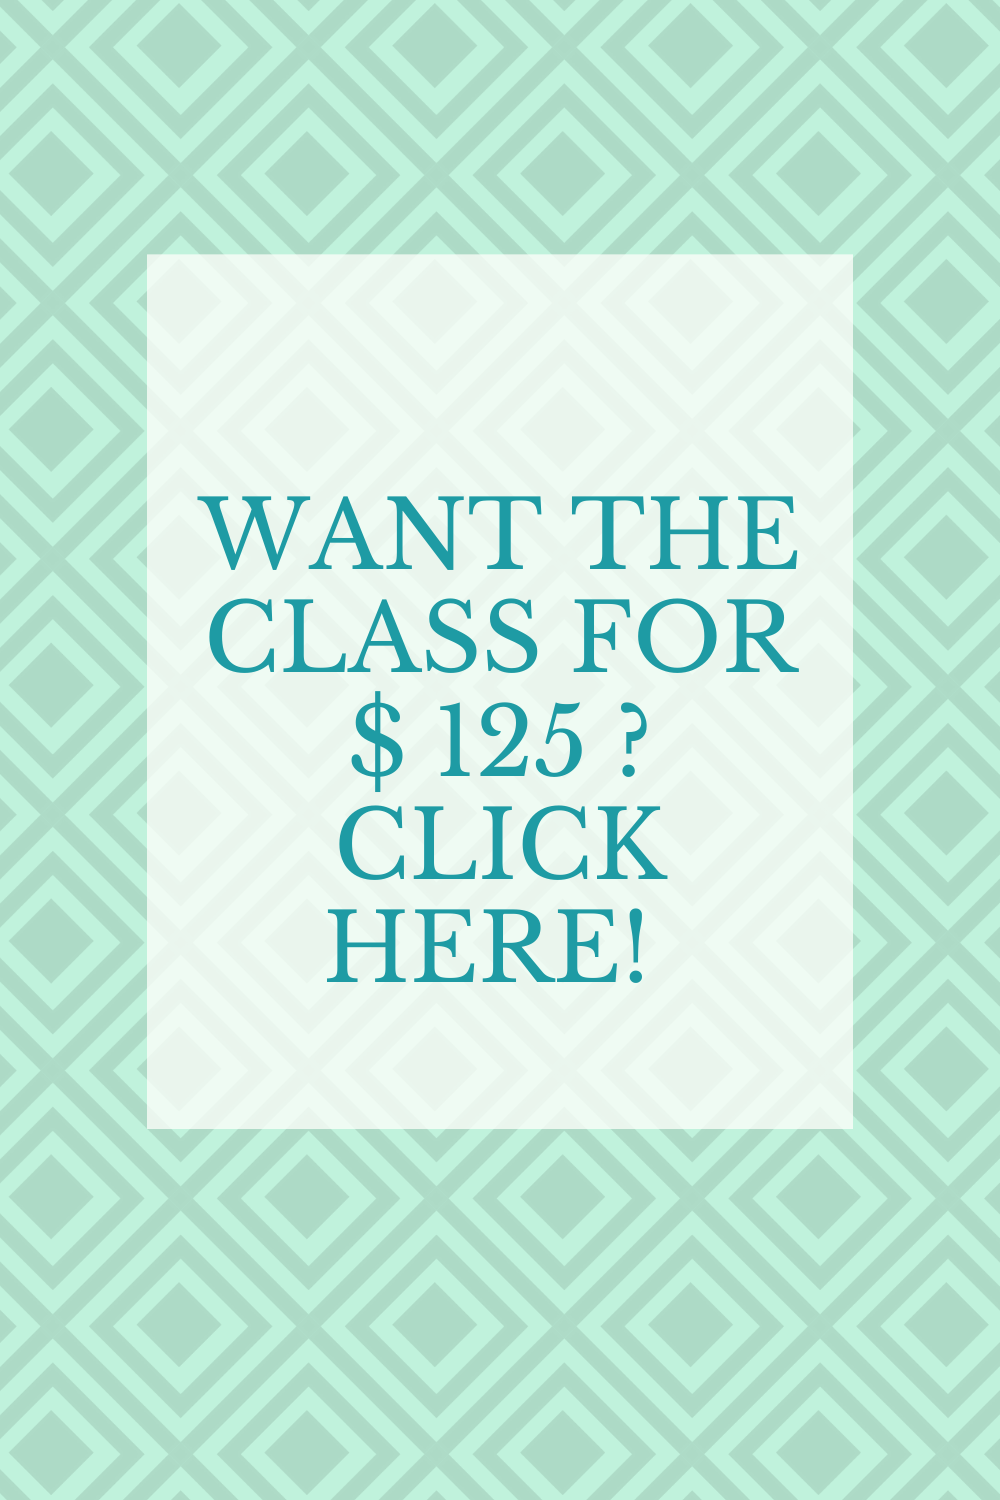 Coupon to get class for $125.00